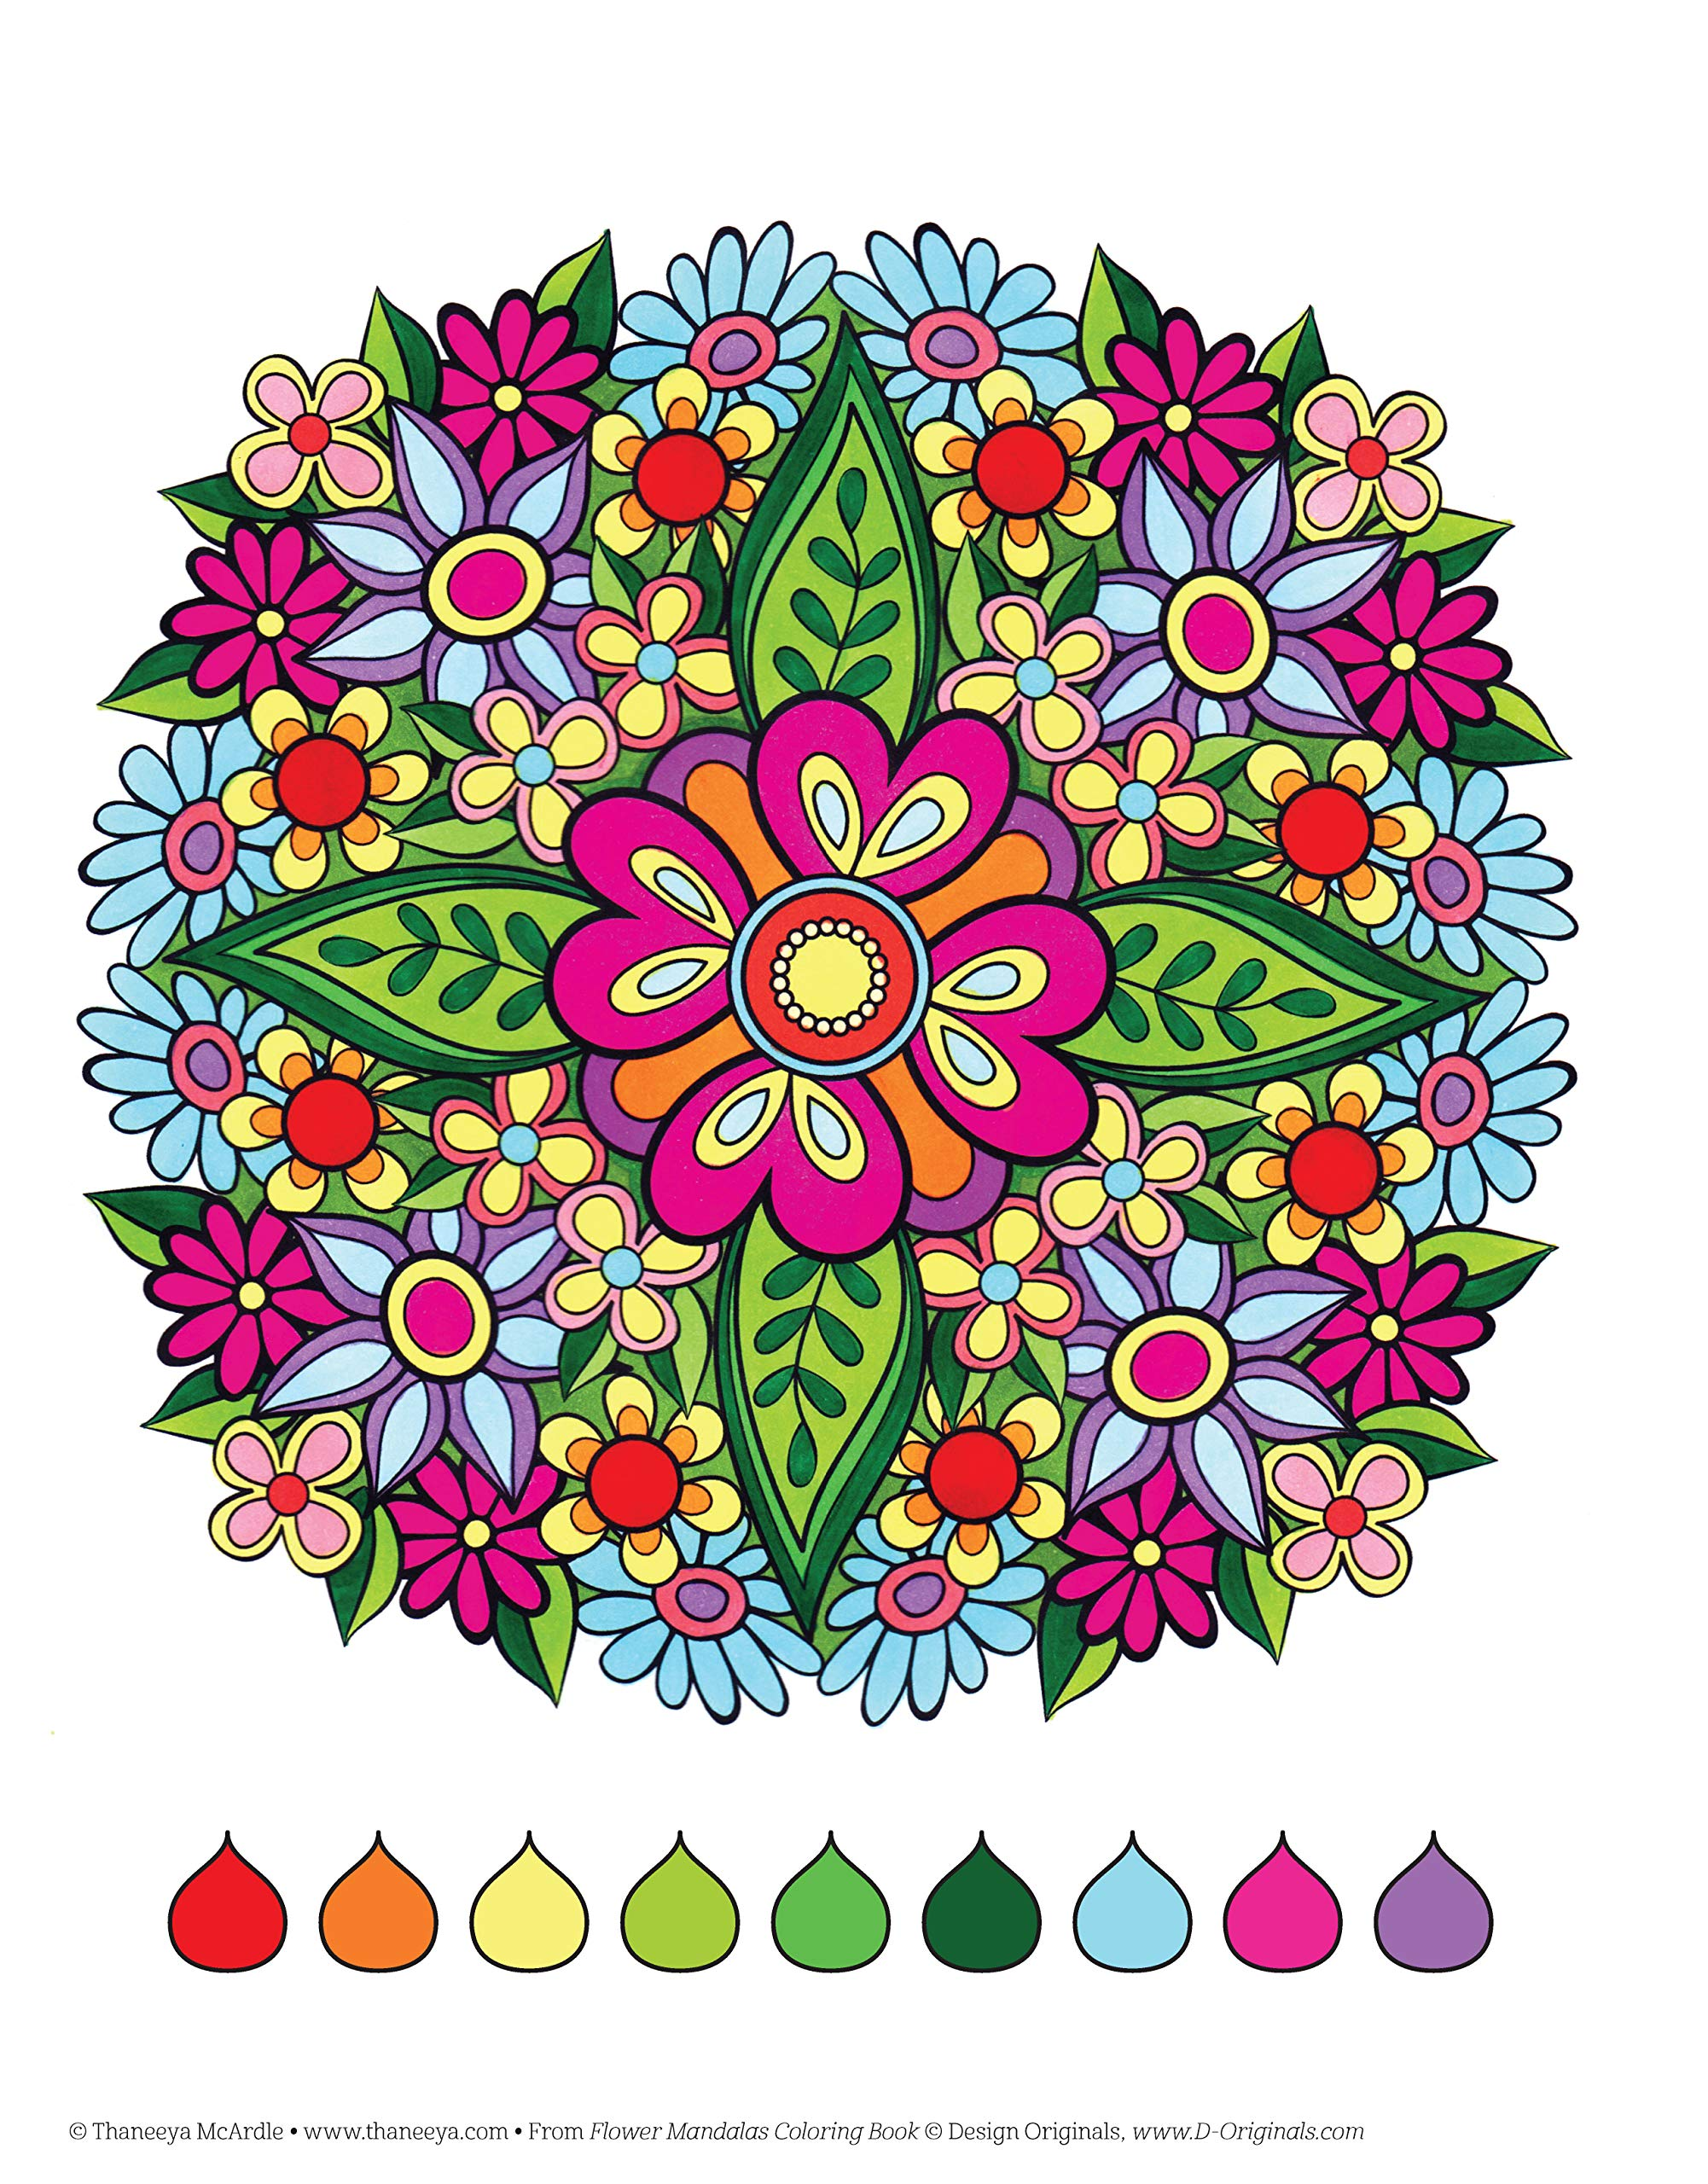 Flower Mandalas Coloring Book (Coloring Is Fun): Amazon.de: Thaneeya ...